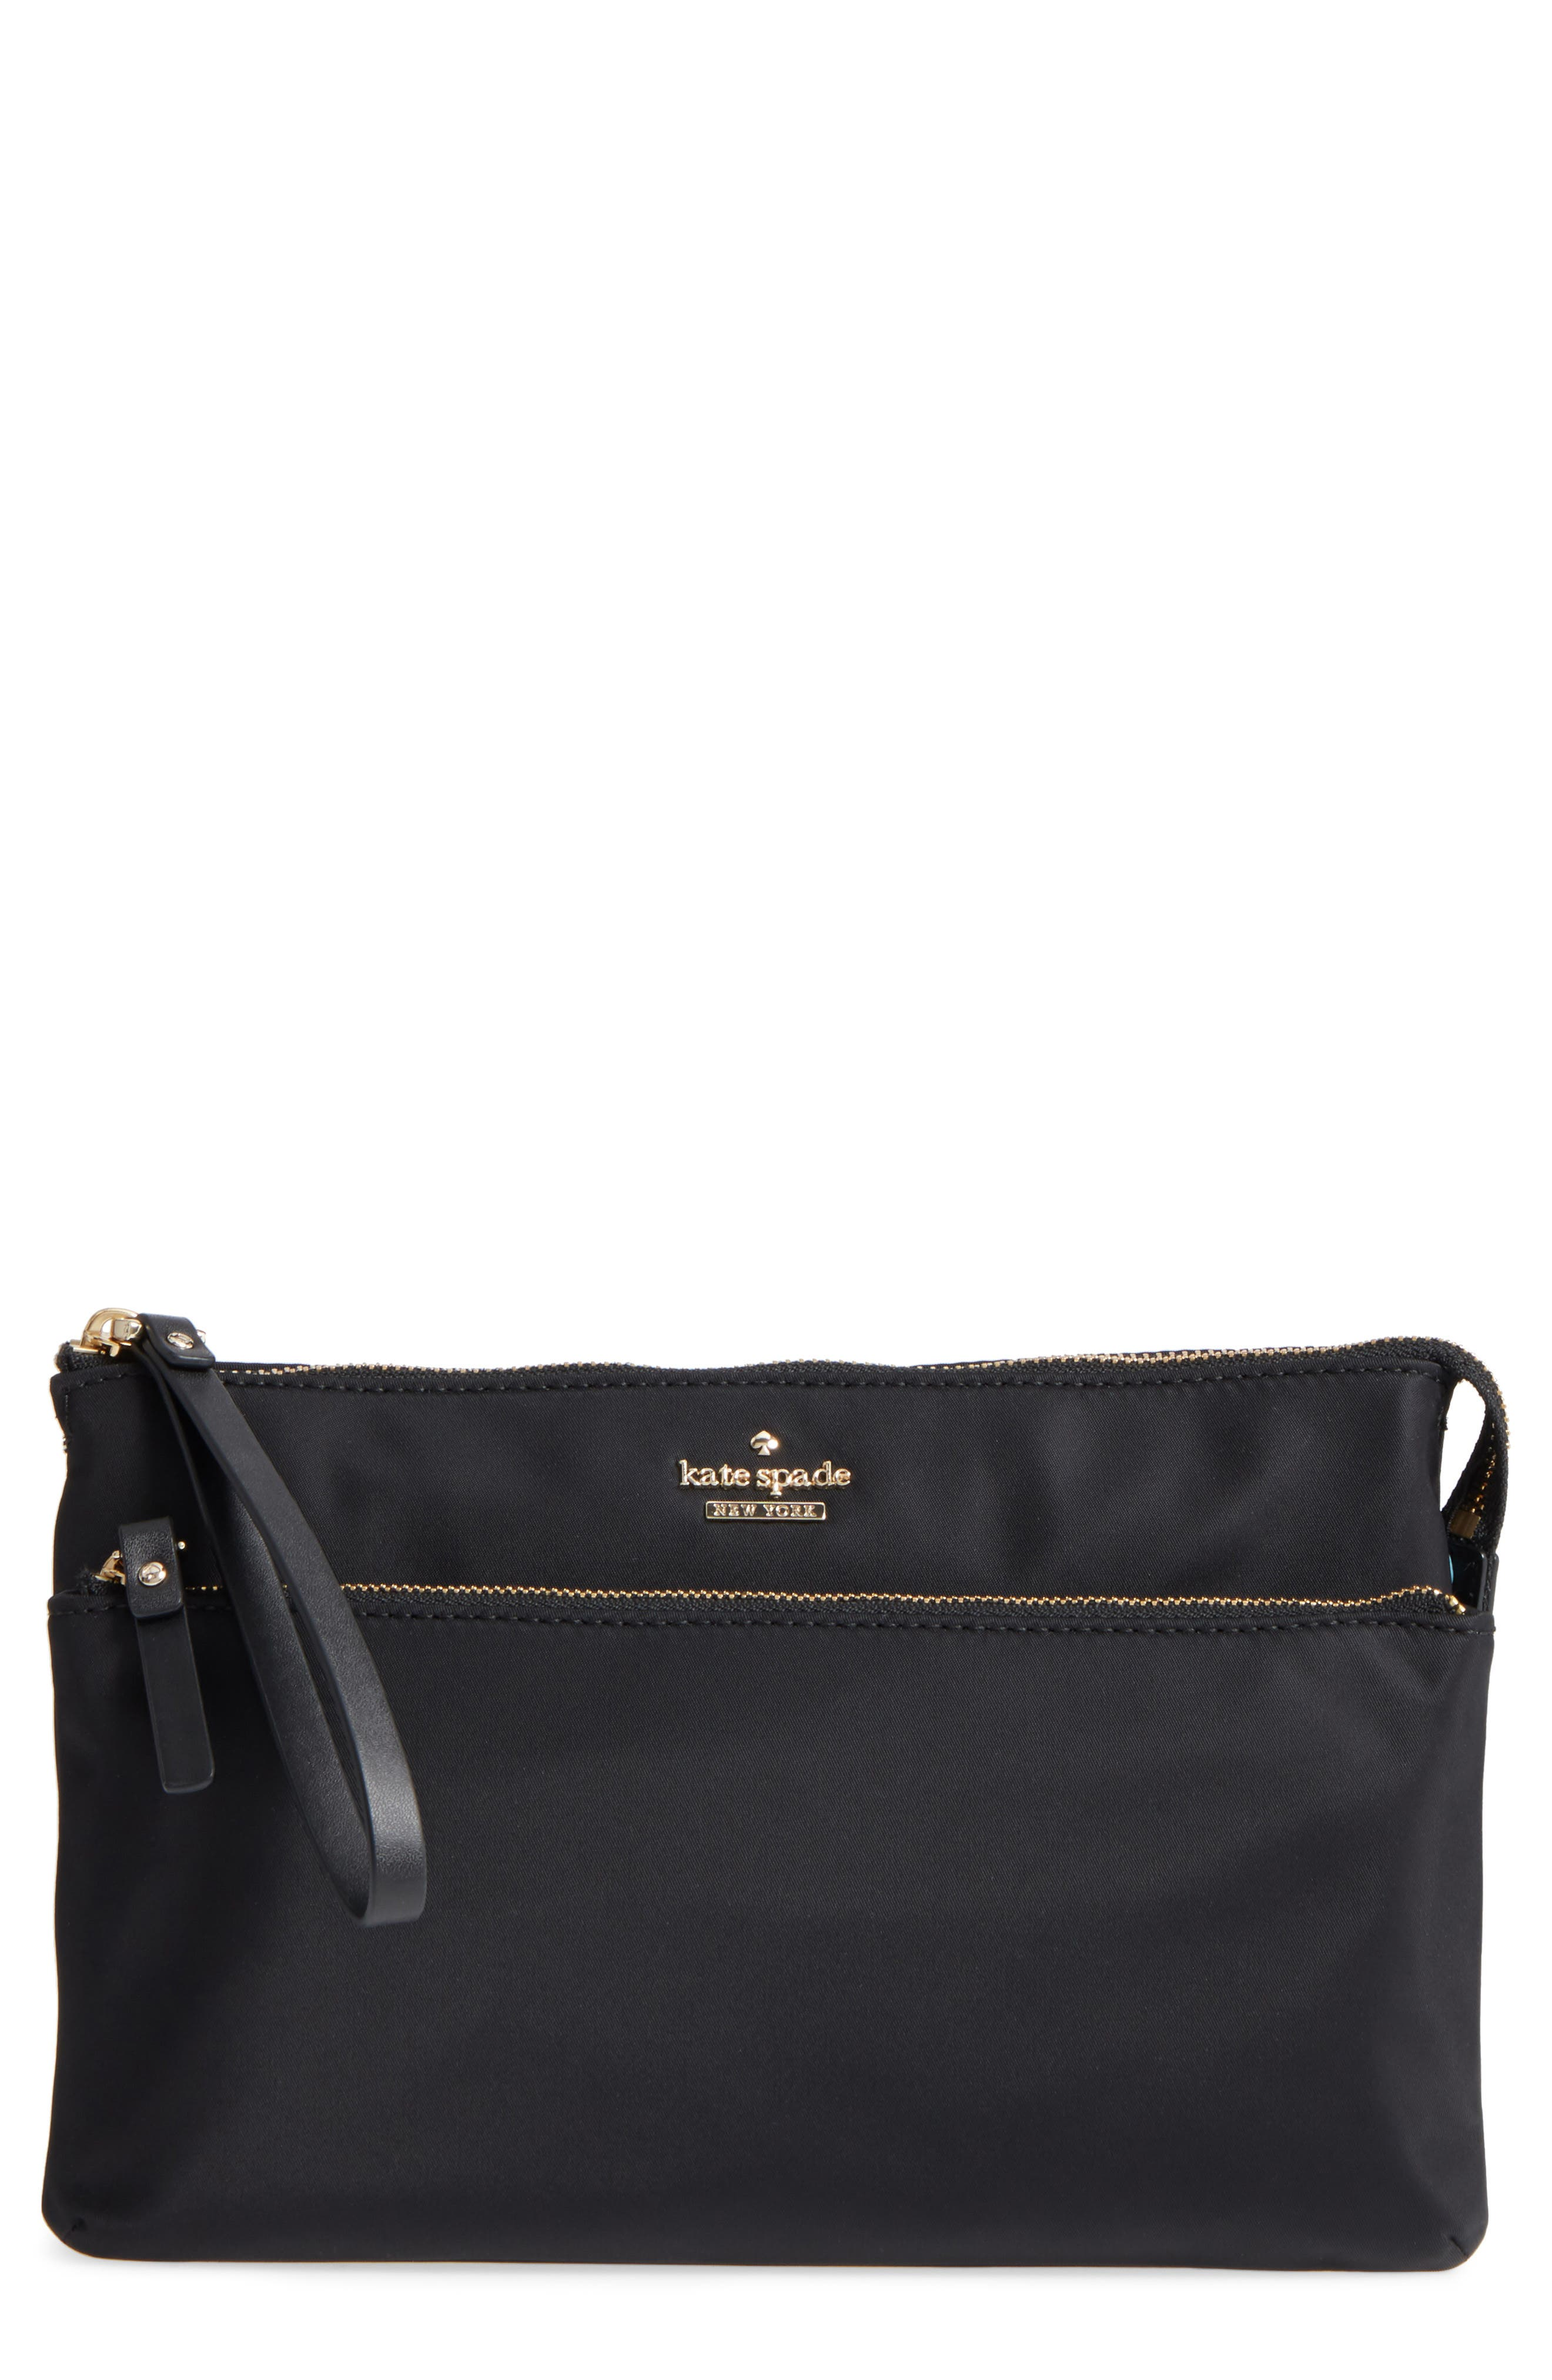 KATE SPADE NEW YORK, watson lane winnie baby nylon pouch with changing mat, Main thumbnail 1, color, 001